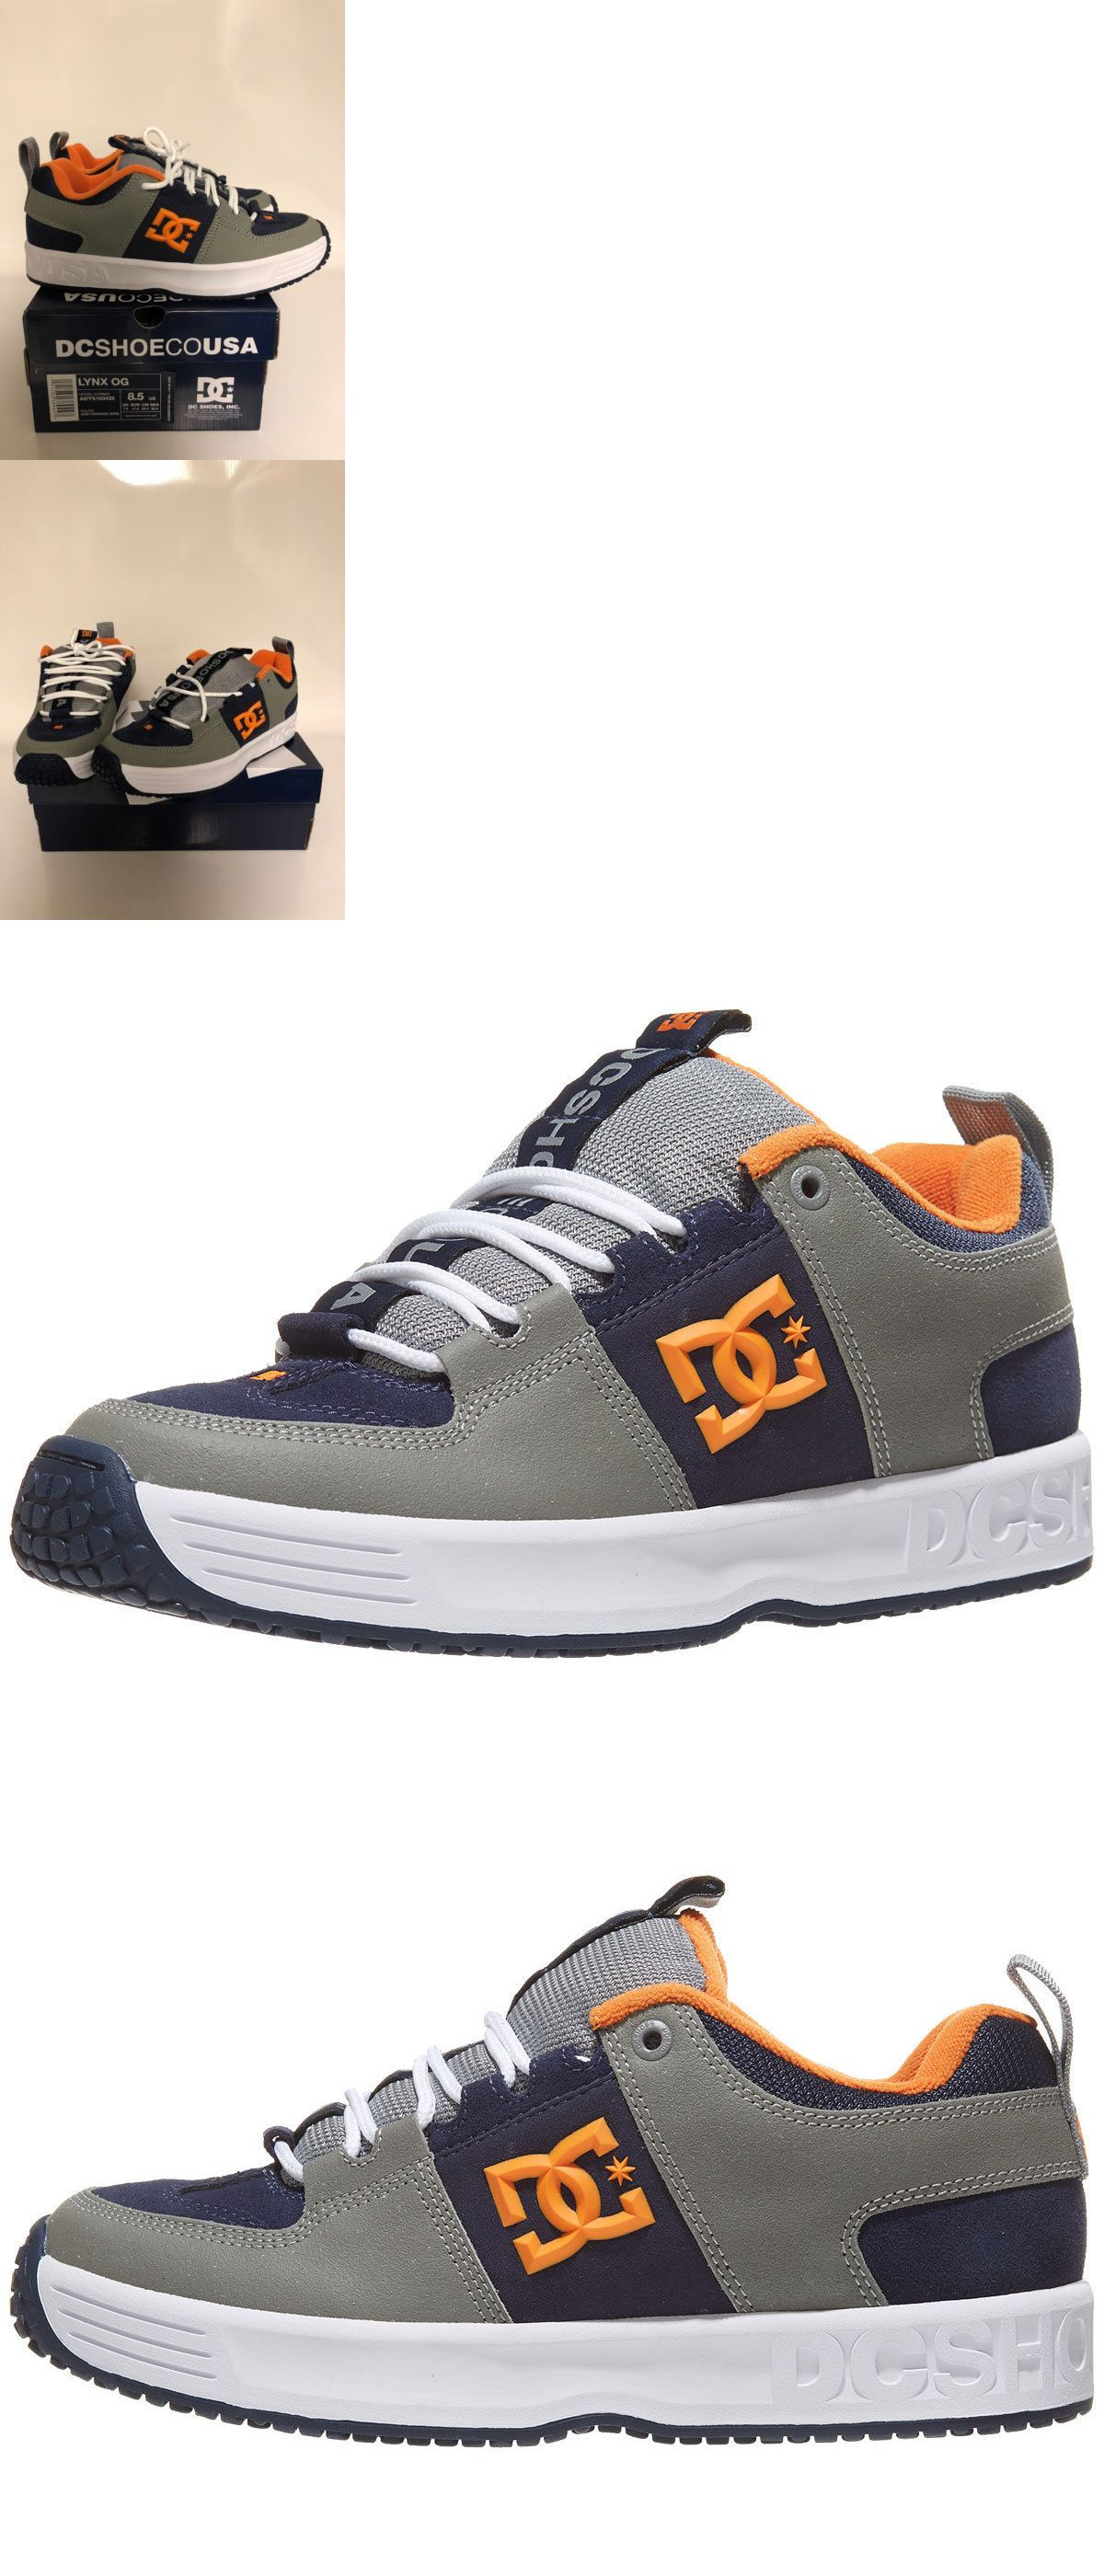 7482a40516 Footwear 50883  Dc Shoe Co Usa Lynx Og Navy Grey Orange - Men S 8.5  Skateboarding Shoes -  BUY IT NOW ONLY   119.95 on  eBay  footwear  orange  ...